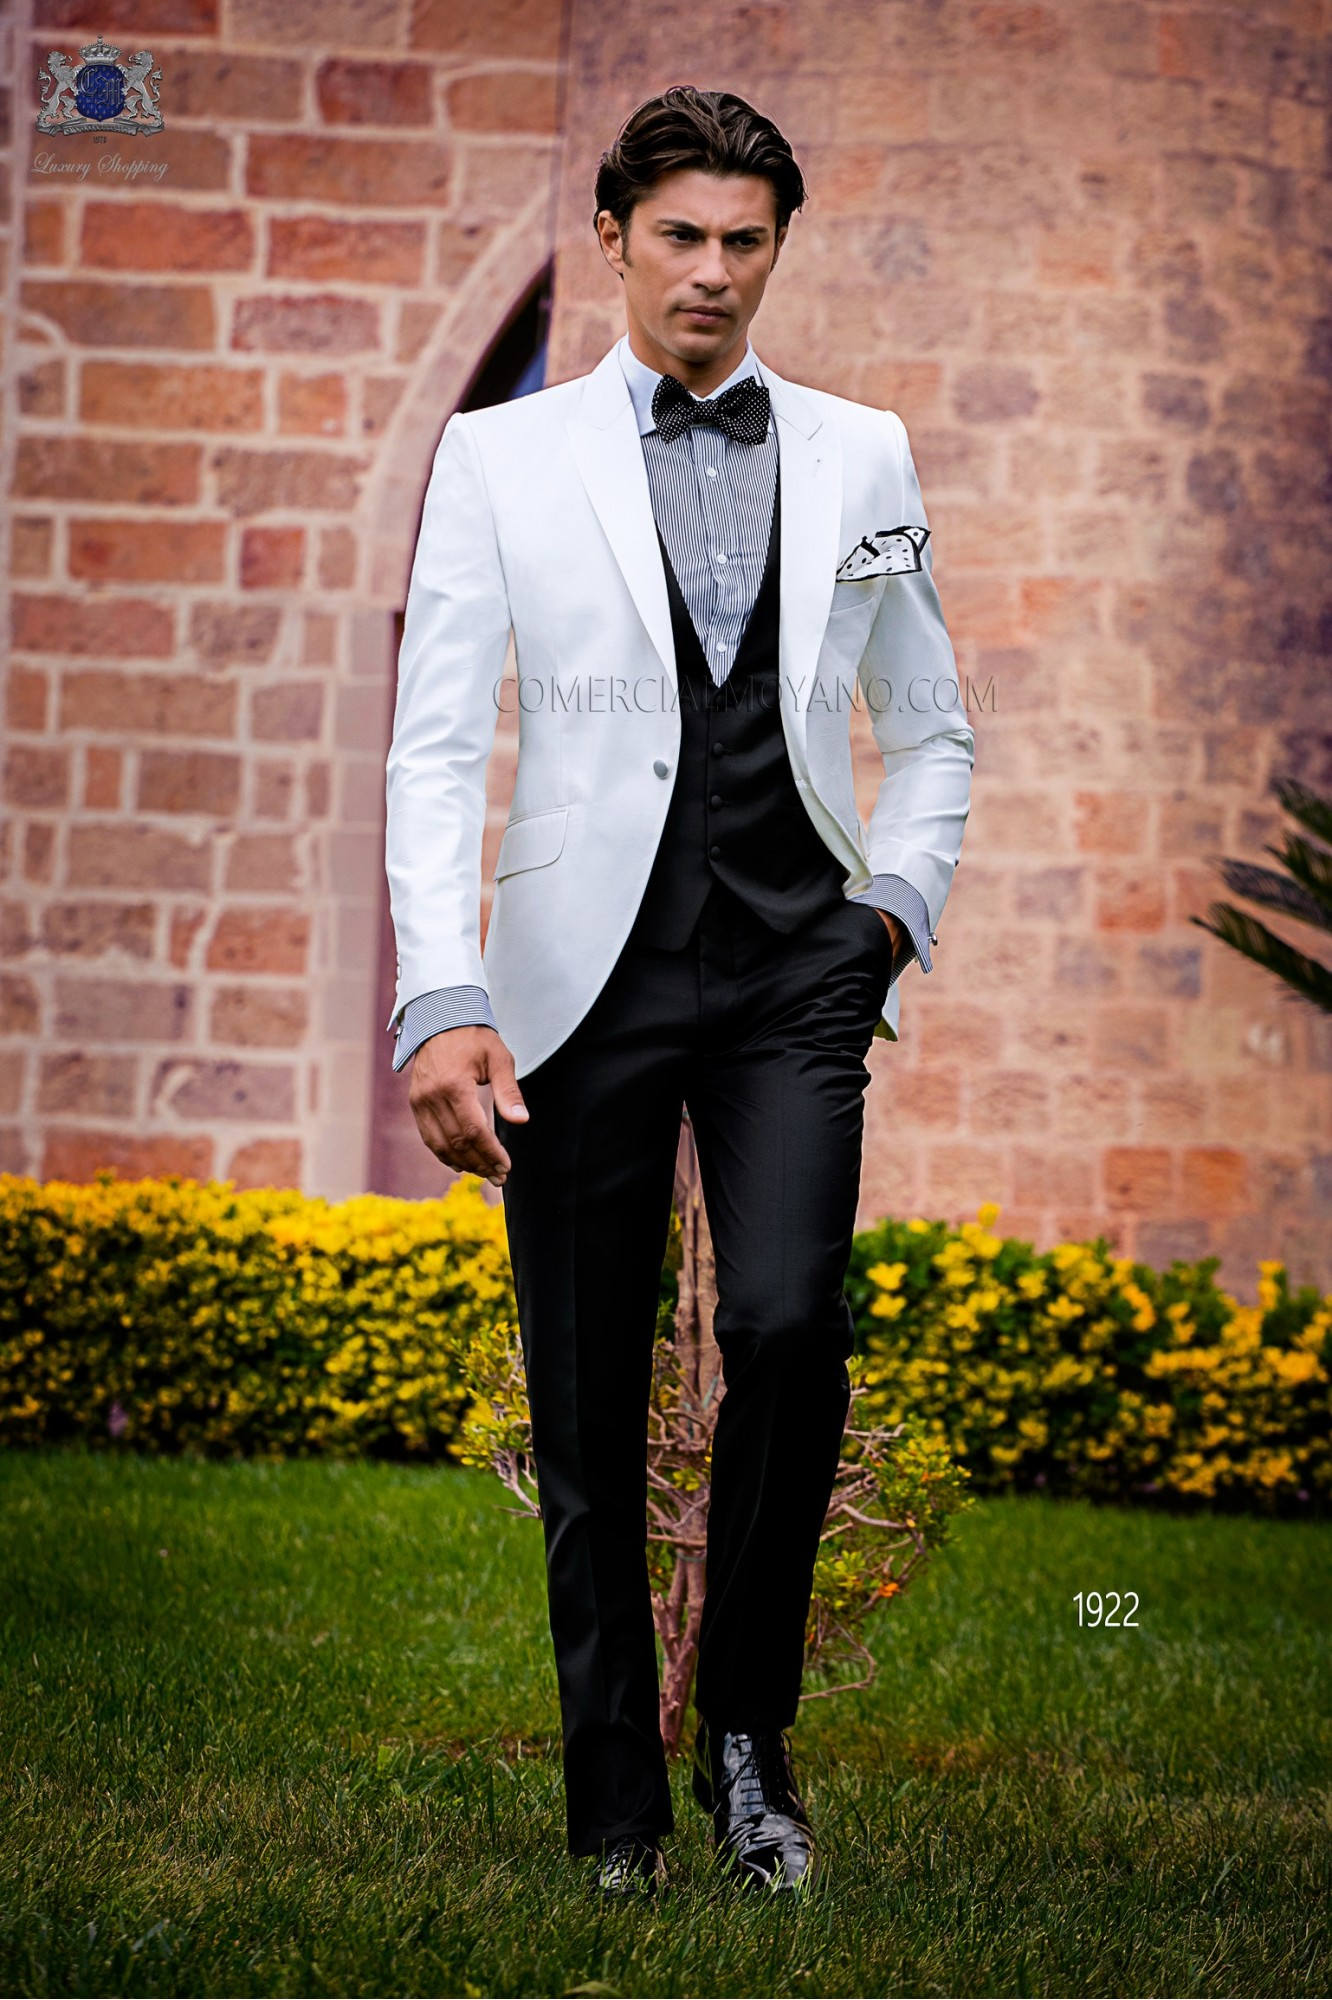 Bespoke white shantung dinner jacket combined with a black trousers